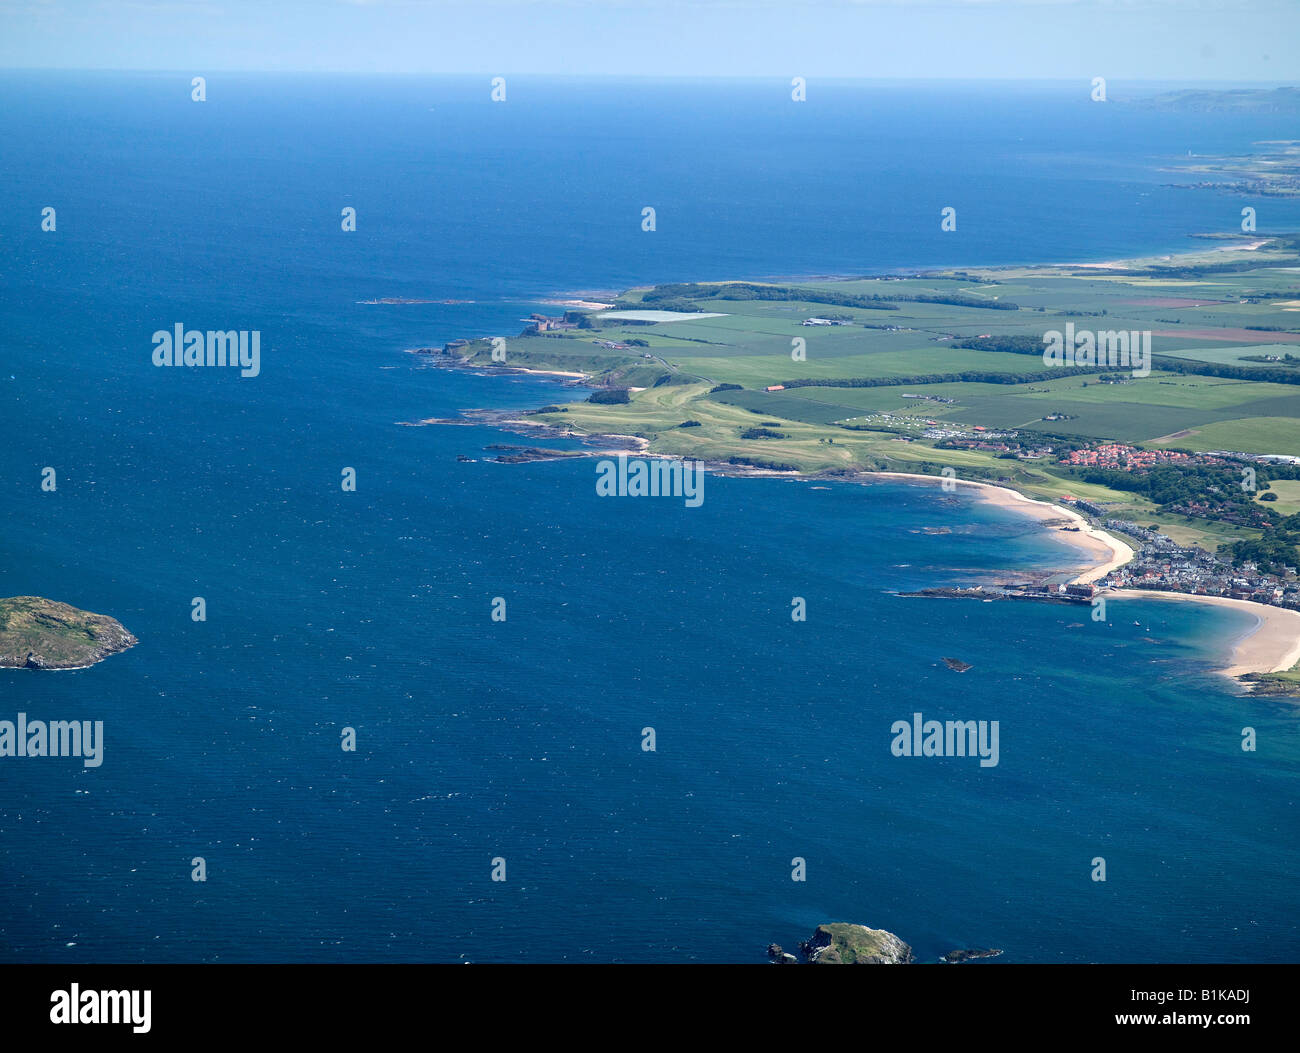 Entrance to the Firth of Forth, & The North Berwick Coast, Firth of Forth, Central Scotland - Stock Image